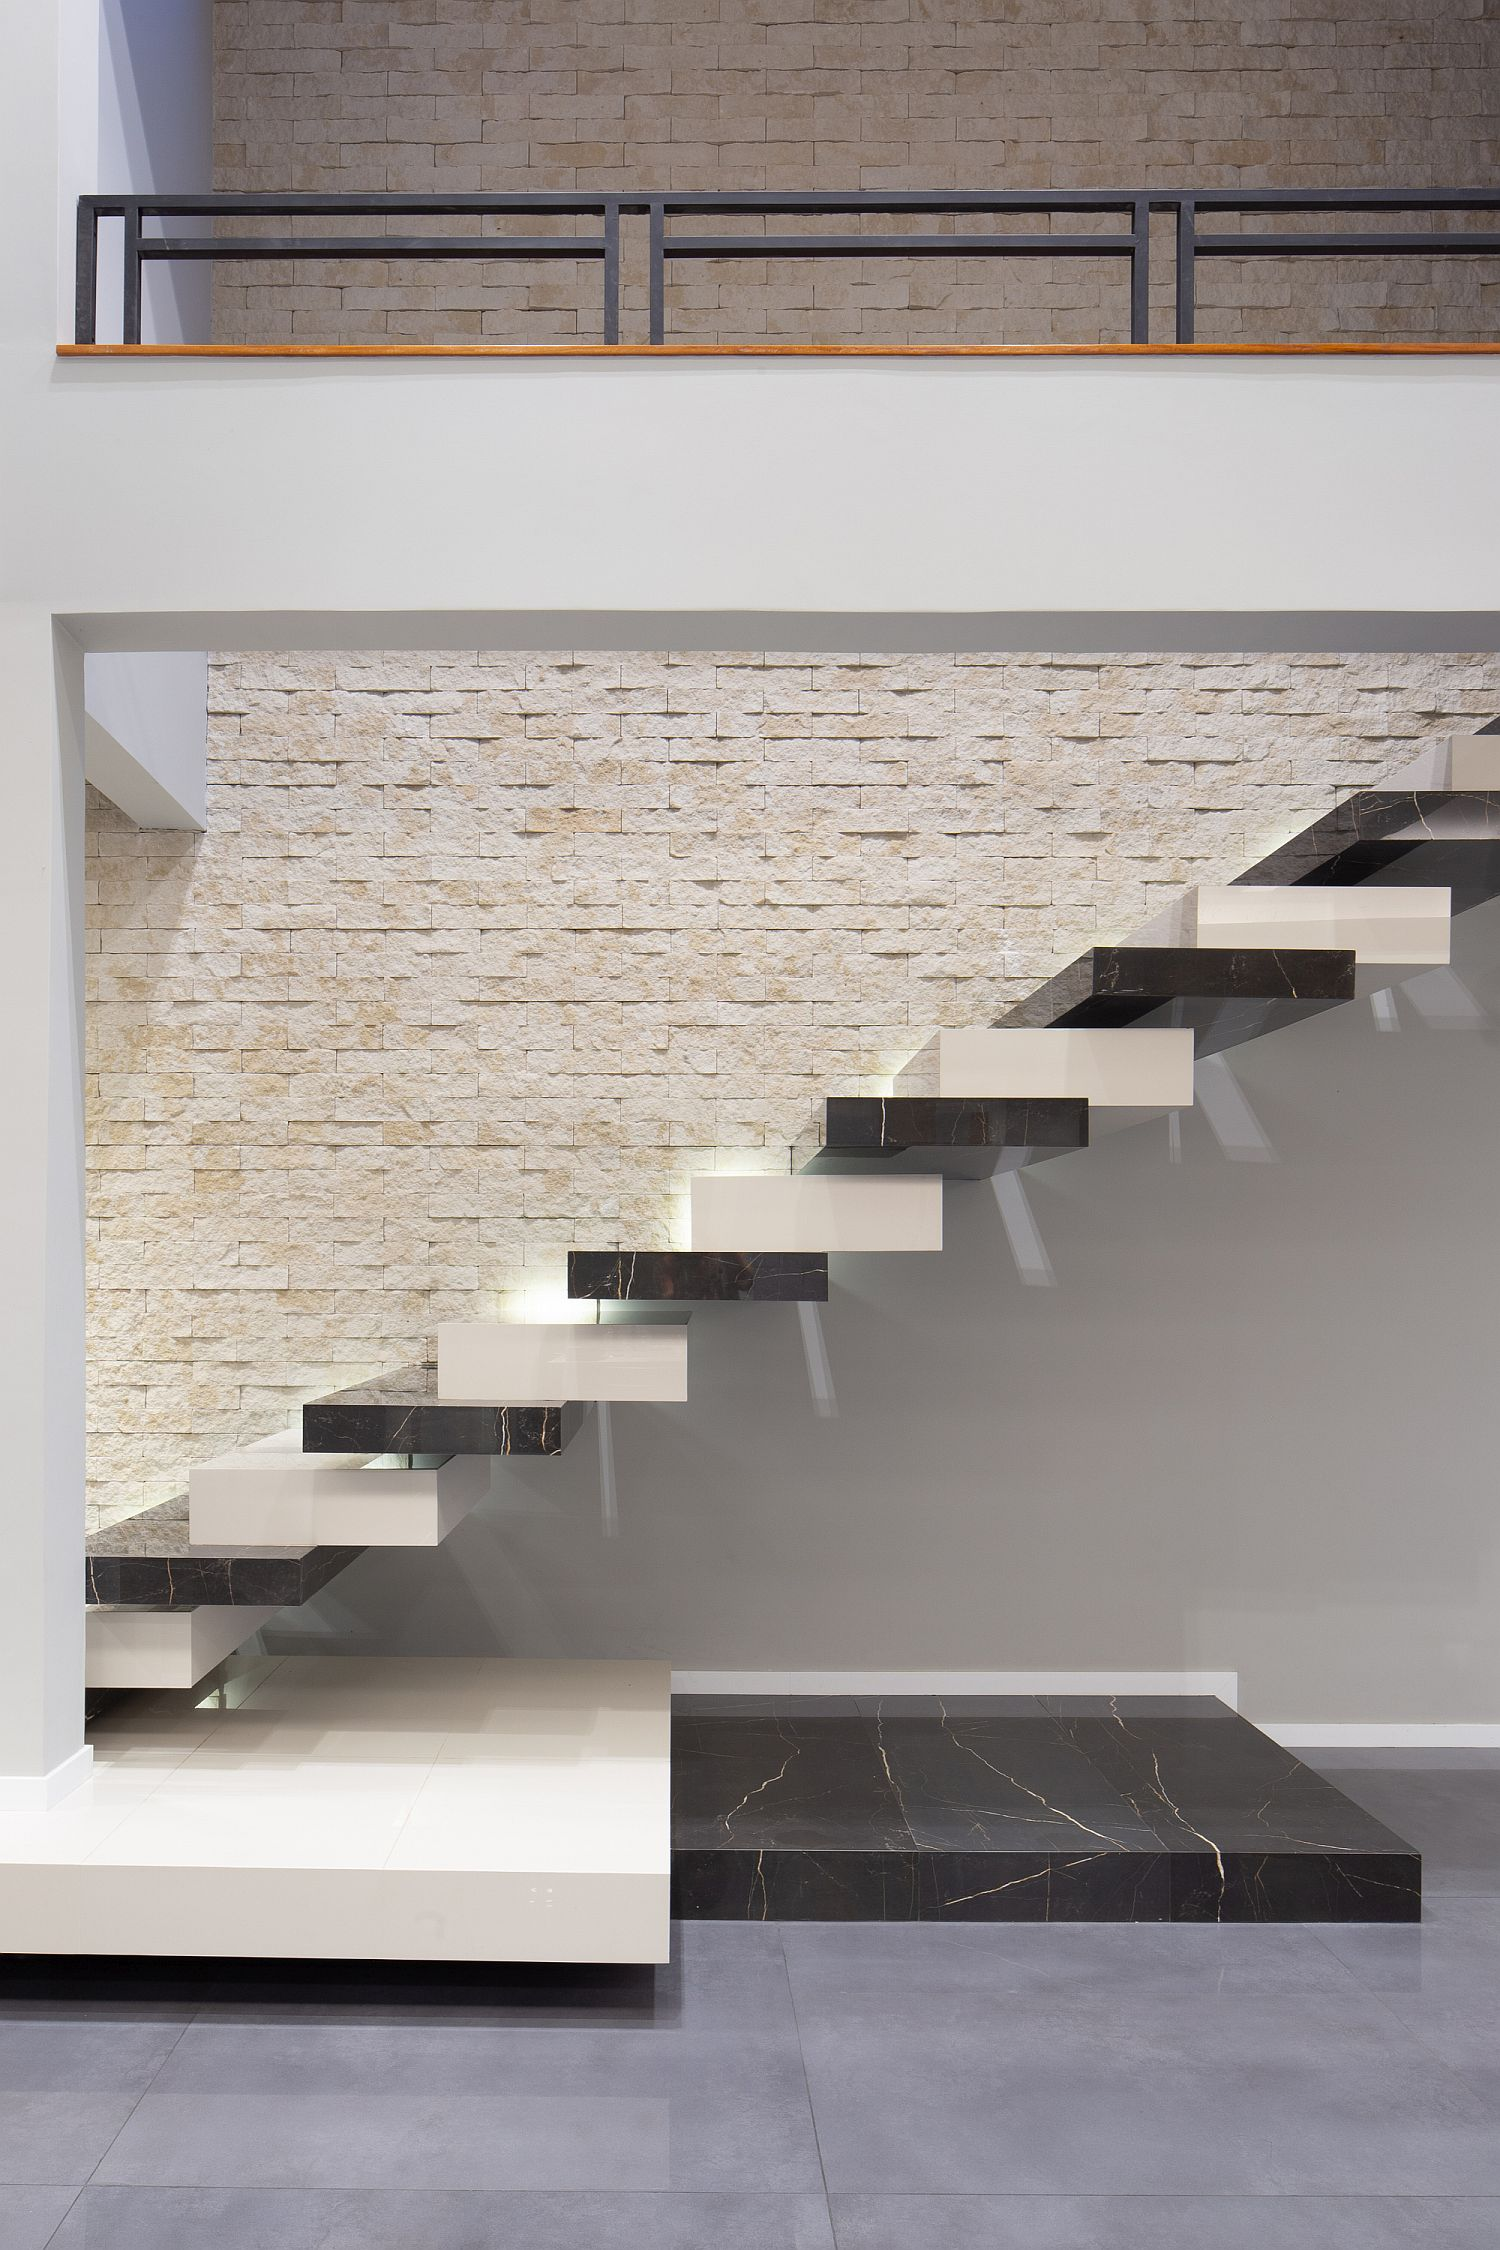 Floating staircase inside the house steals the spotlight